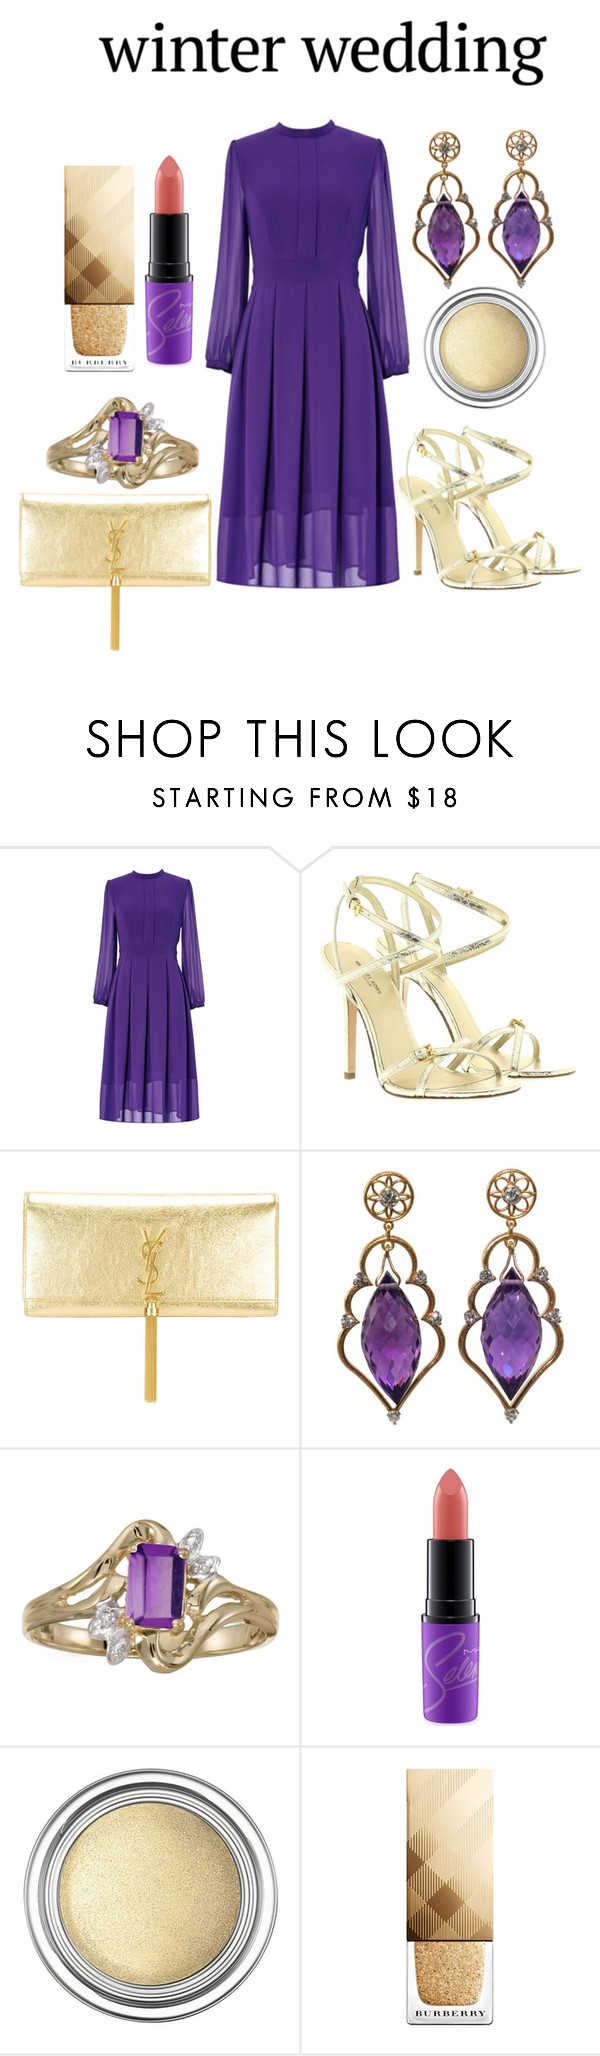 """The Wedding Fun!!!"" by mrudula-26 ❤ liked on Polyvore featuring Michael Kors, Yves Saint Laurent, Wayne Smith Jewels, BillyTheTree, MAC Cosmetics, Christian Dior and Burberry"